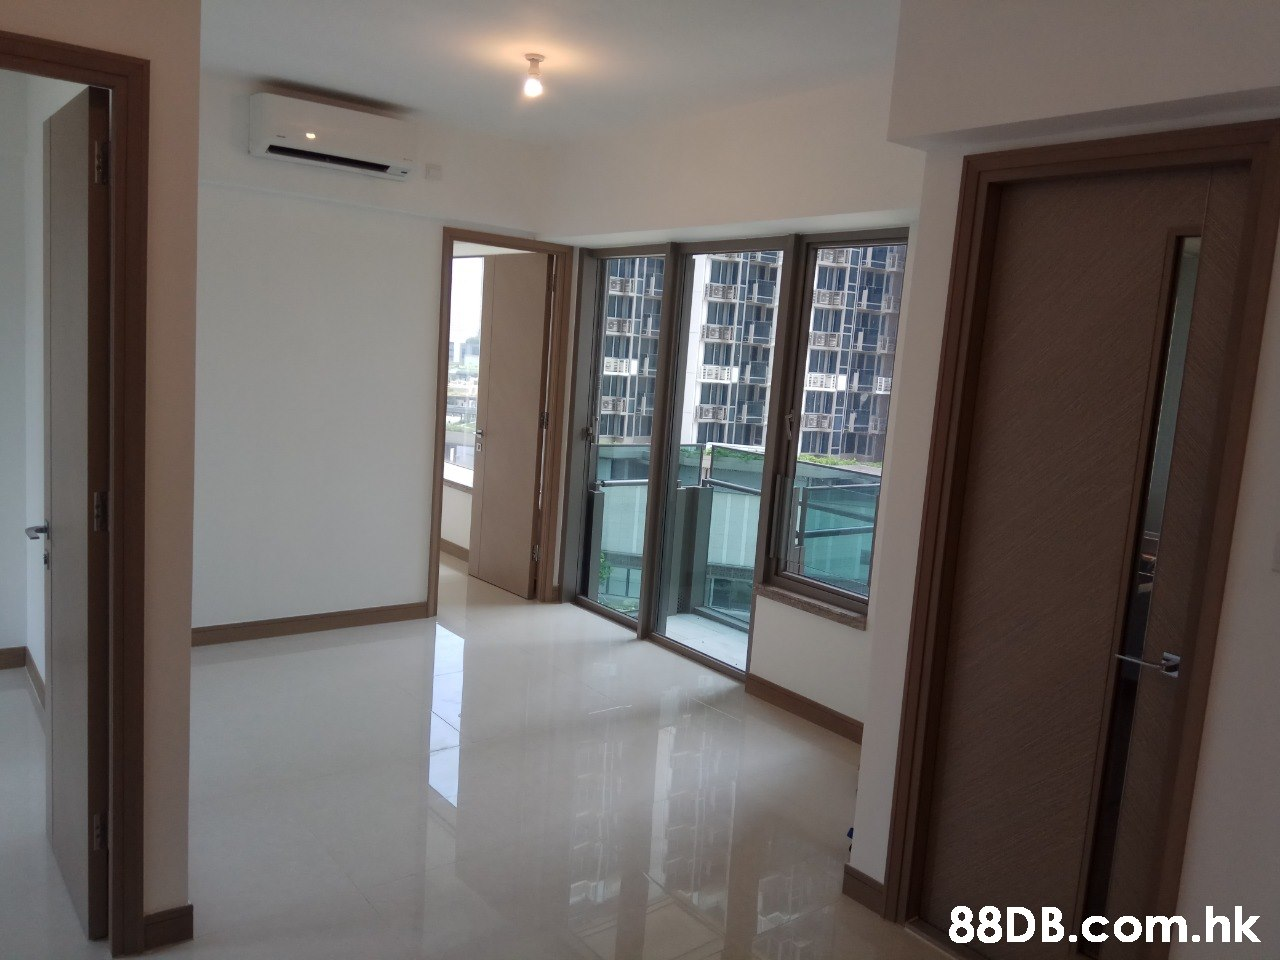 .hk  Property,Room,Floor,Building,Real estate